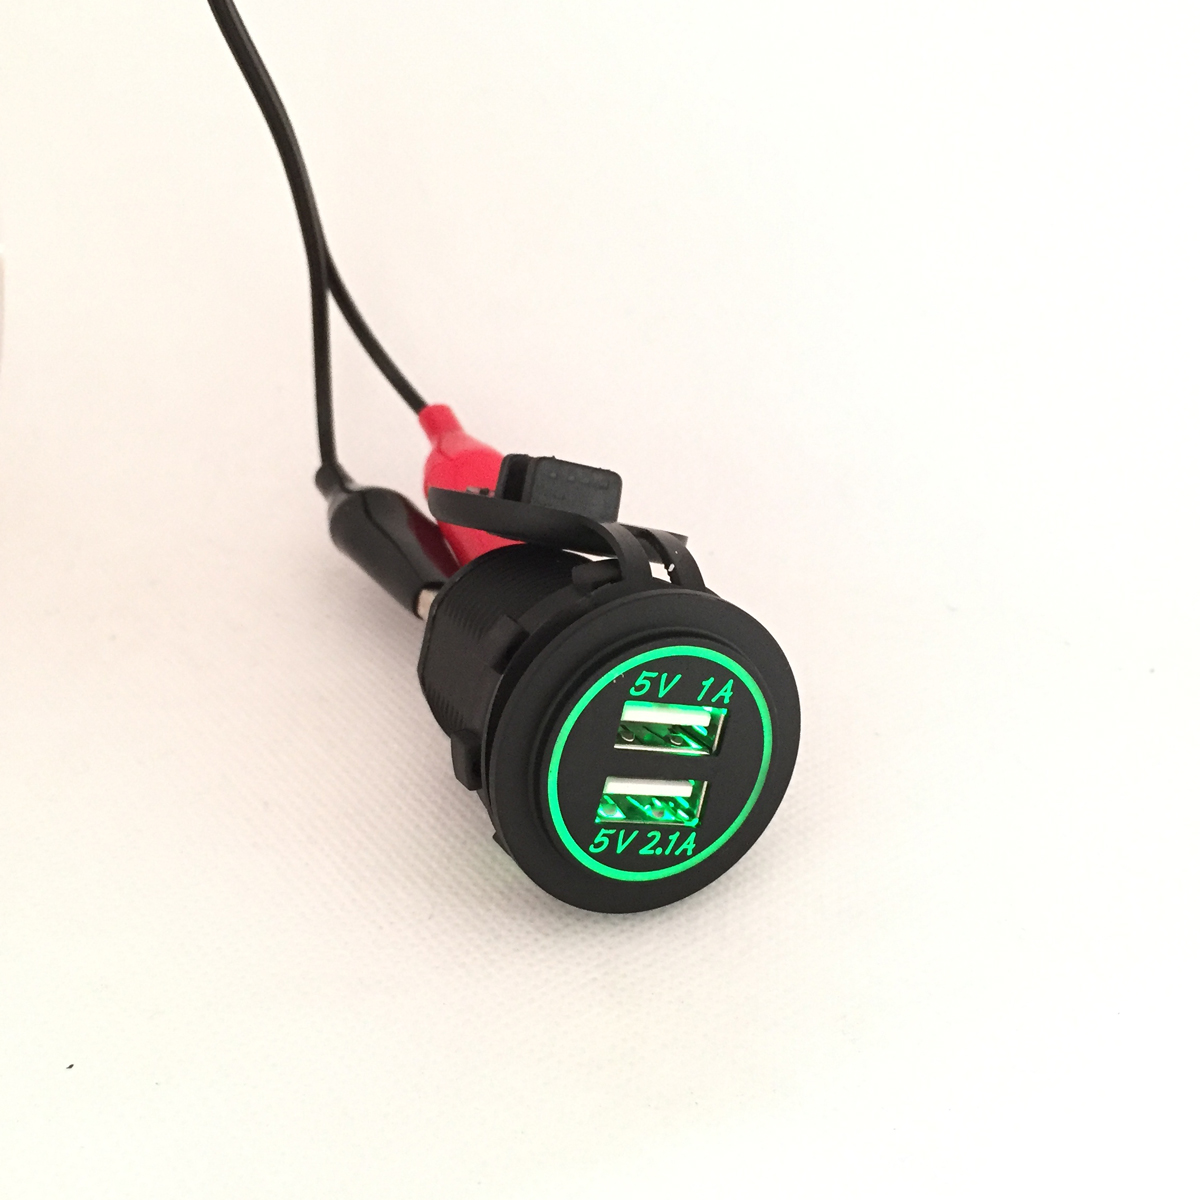 DIY 12V - 24V Dual USB punjač za automobil Power Outlet 1A i 2.1A za - Automobilska Elektronika